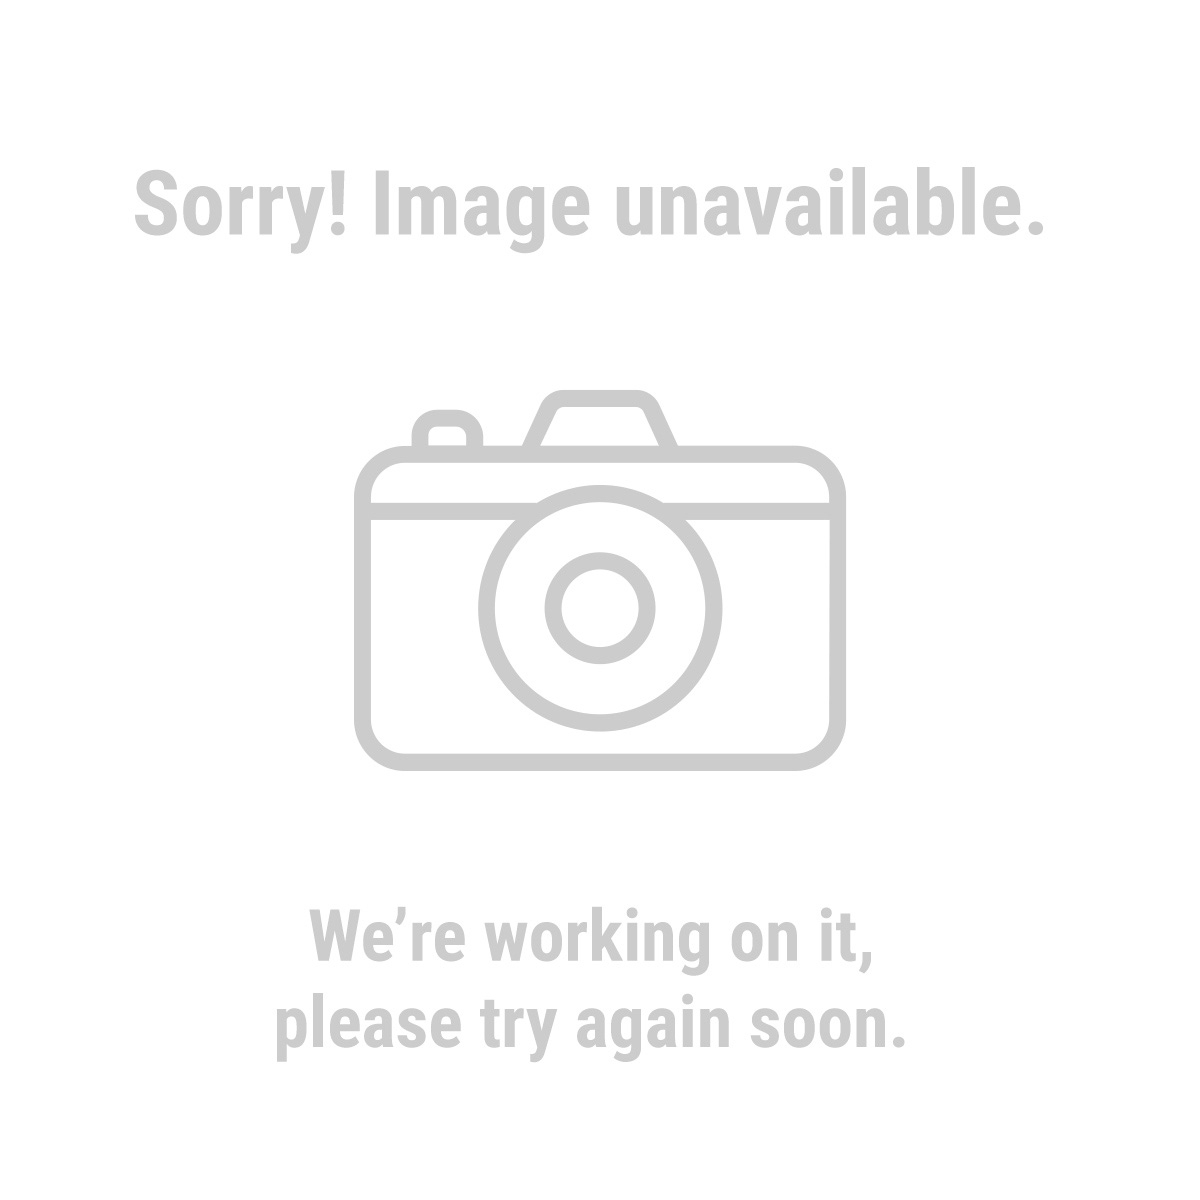 Warrior 69808 7 Piece 100 Grit Aluminum Oxide Sandpaper Sheets